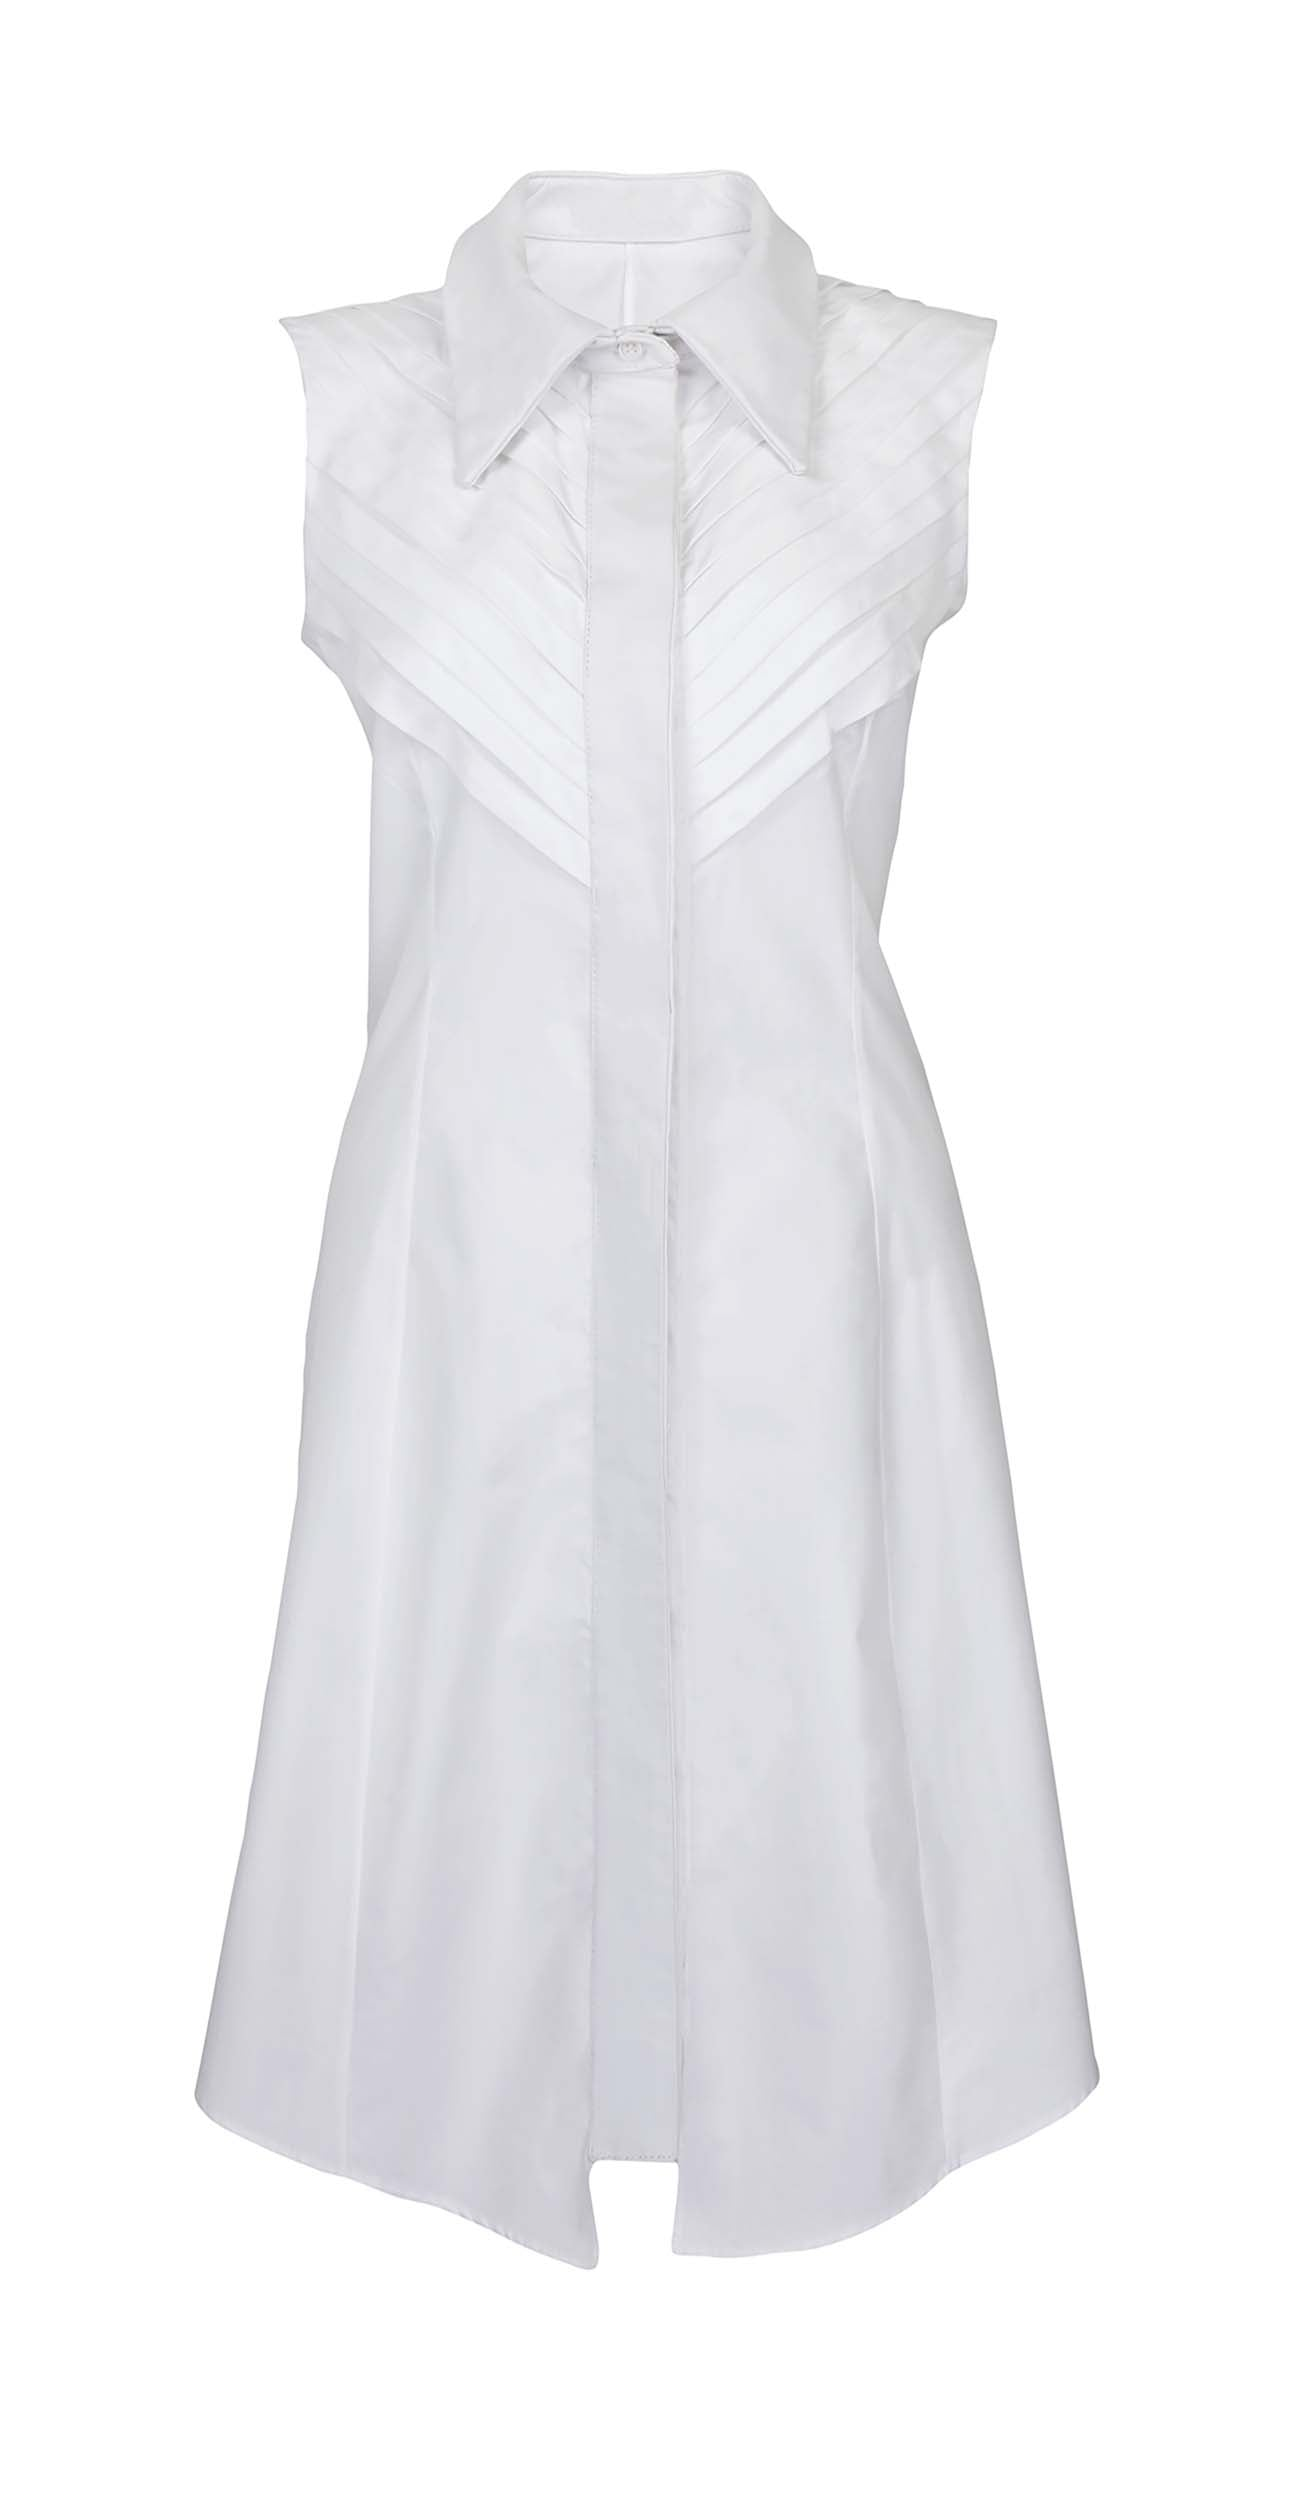 White sleeveless chic shirt with a collar